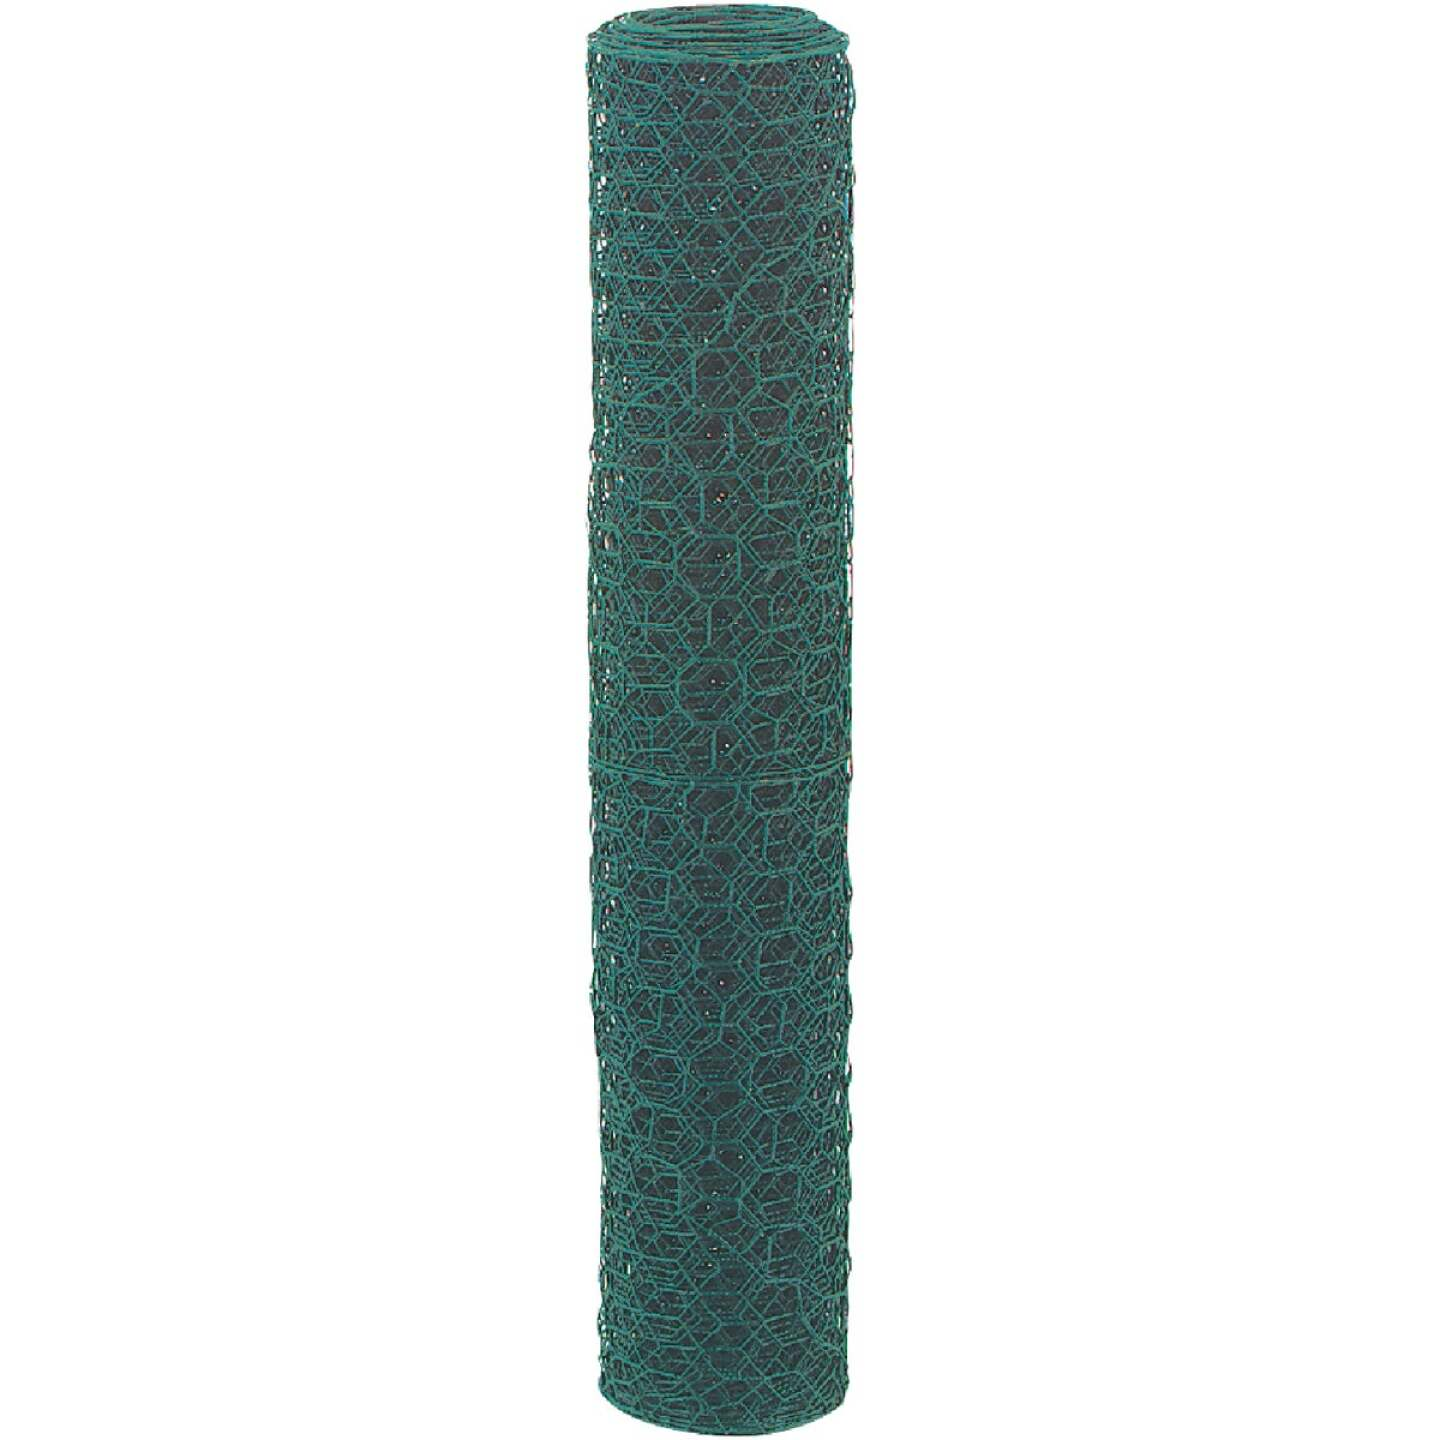 1 In. x 24 In. H. x 25 Ft. L. Green Vinyl-Coated Poultry Netting Image 3